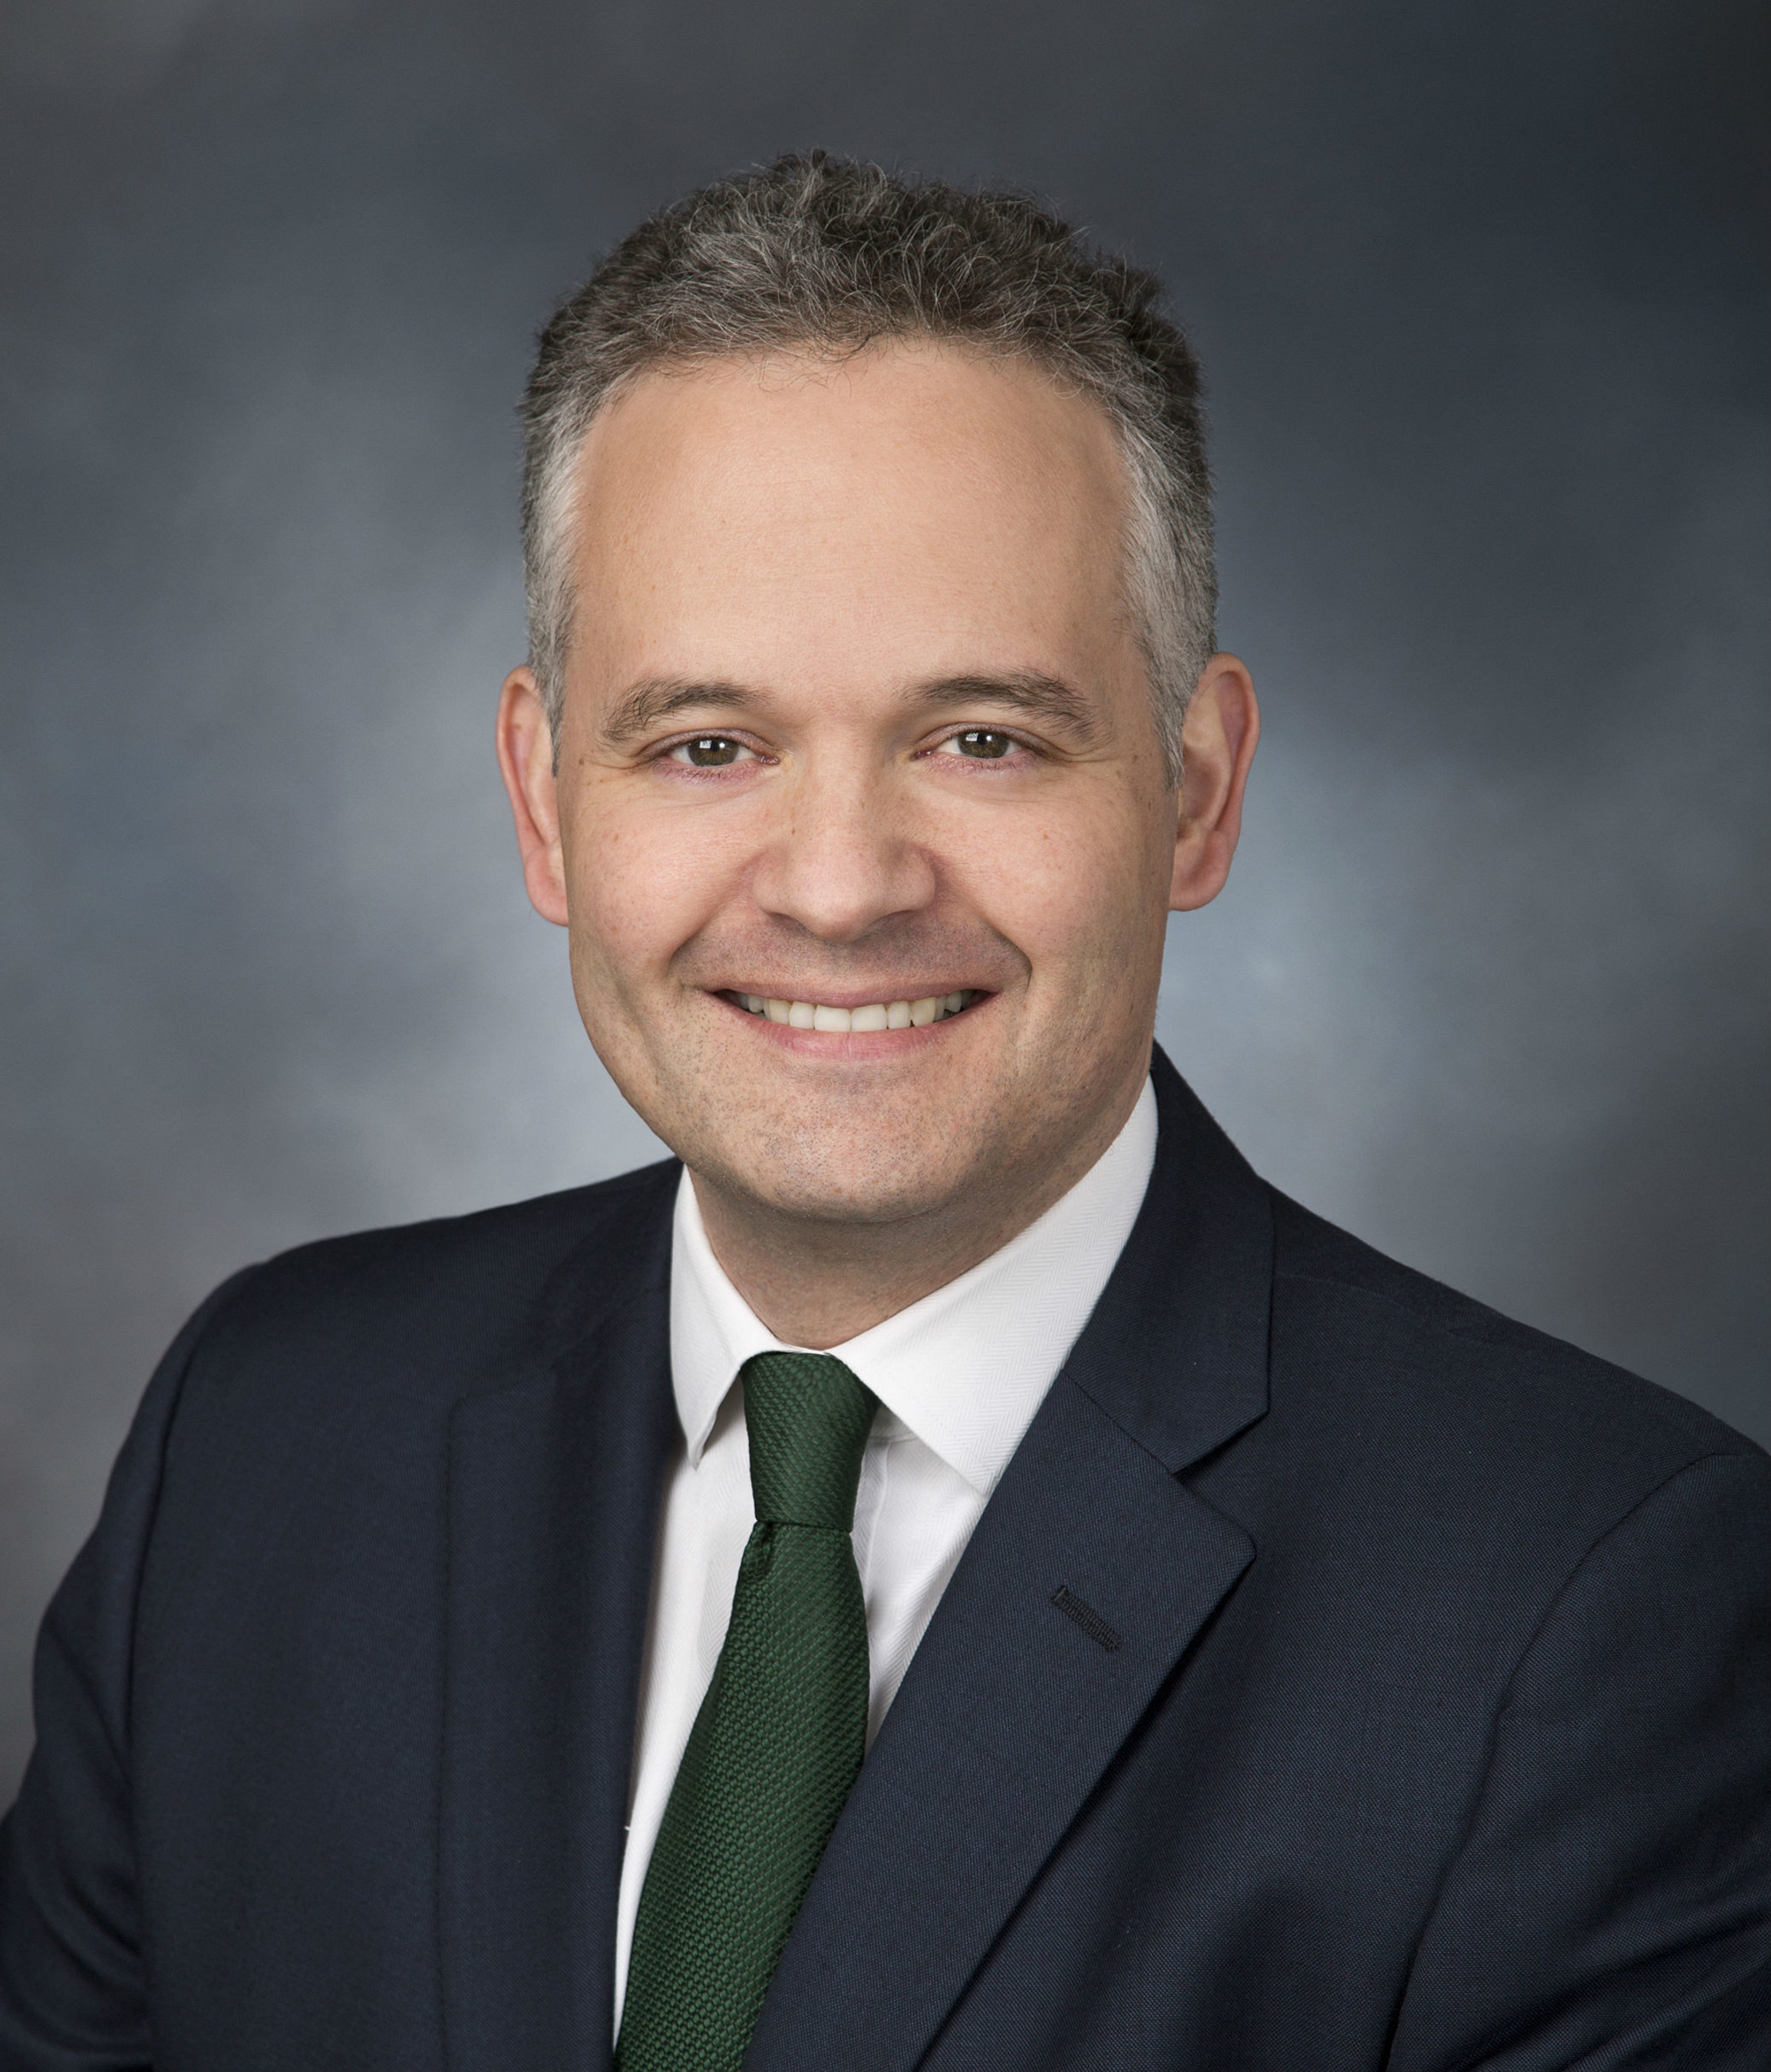 Ben Beeson , Cyber Practice Leader for Lockton, will advise the center on matters related to the link between insurance and the ever-changing cyber risk environment.